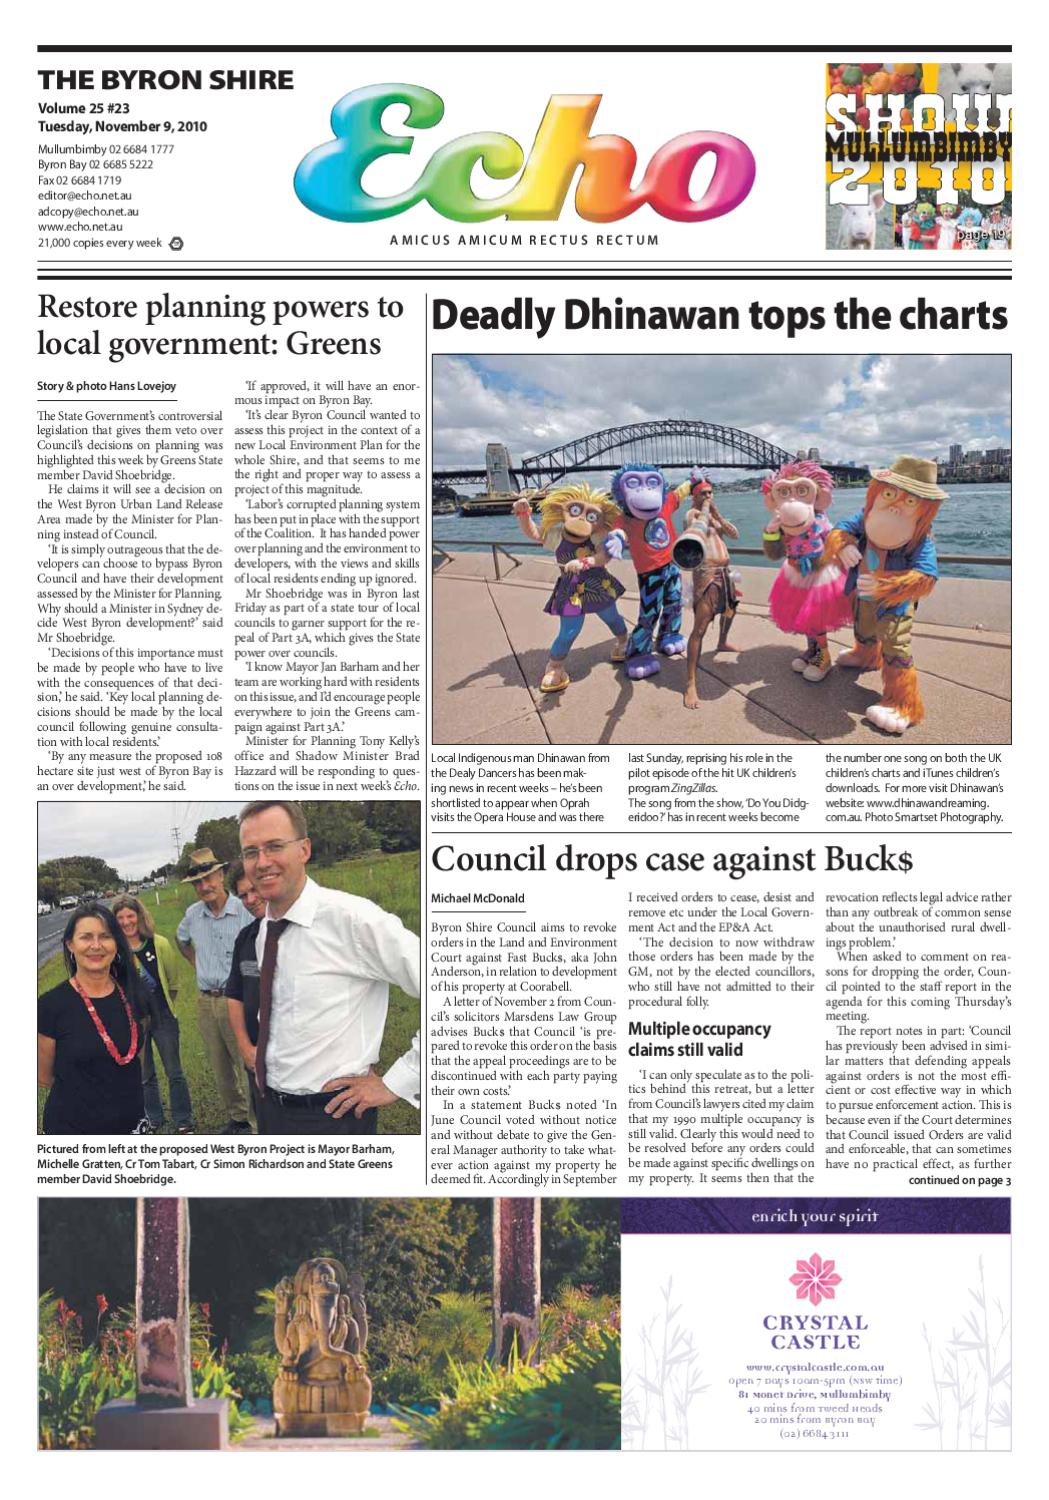 Byron Shire Echo Issue 2523 08 11 2010 By Publications Issuu Sydney Xmas Lights 4 Drysdale Circuit Beaumont Hills Christmas